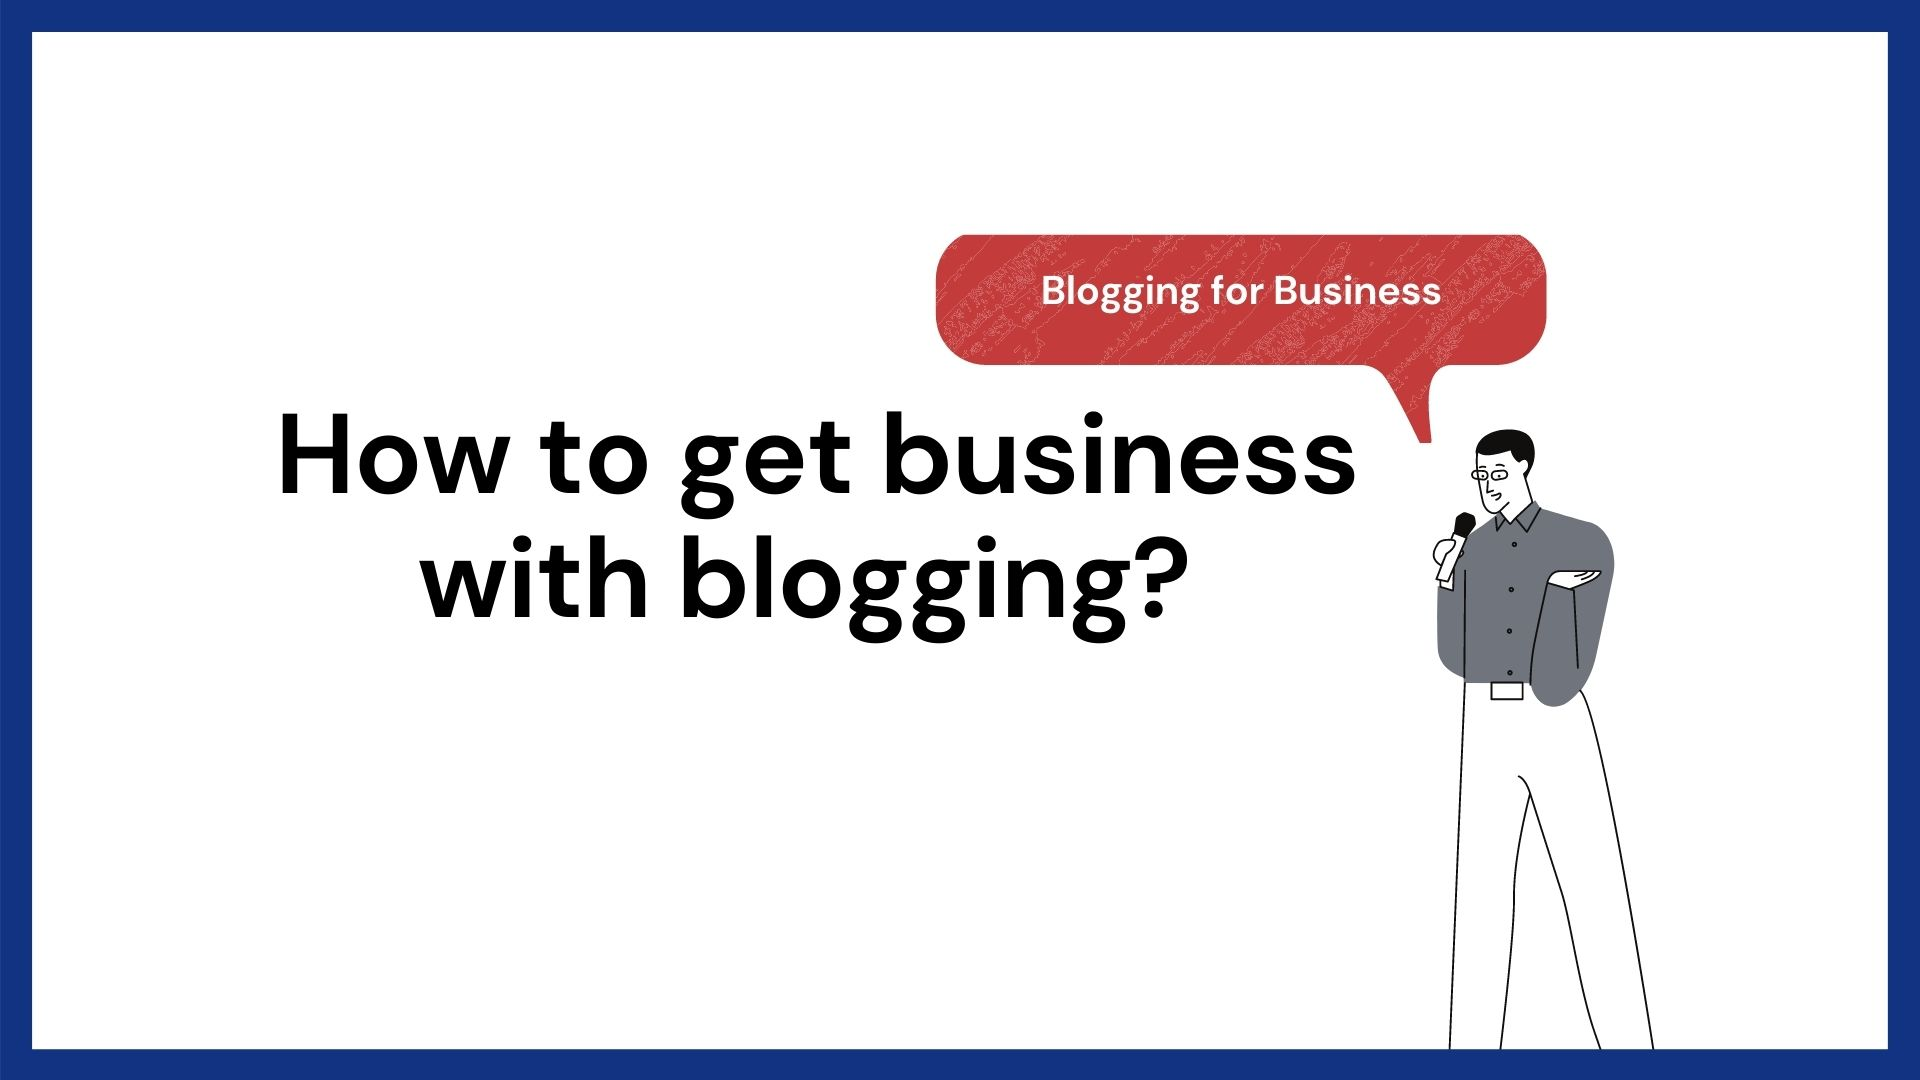 How to get business with blogging